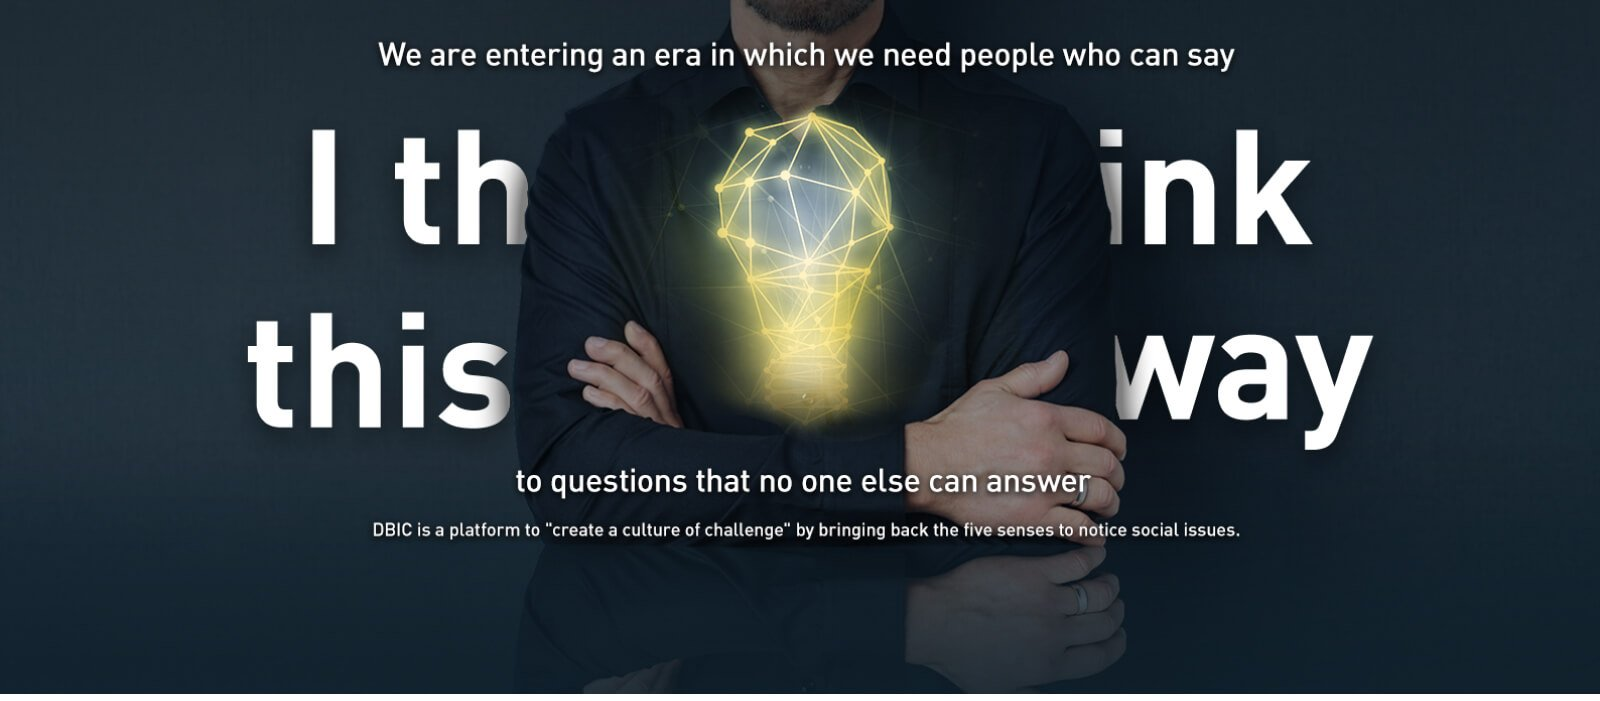 We are entering an era in which we need people who can say 'I think this way' to questions that no one else can answer DBIC is a platform to 'create a culture of challenge' by bringing back the five senses to notice social issues.